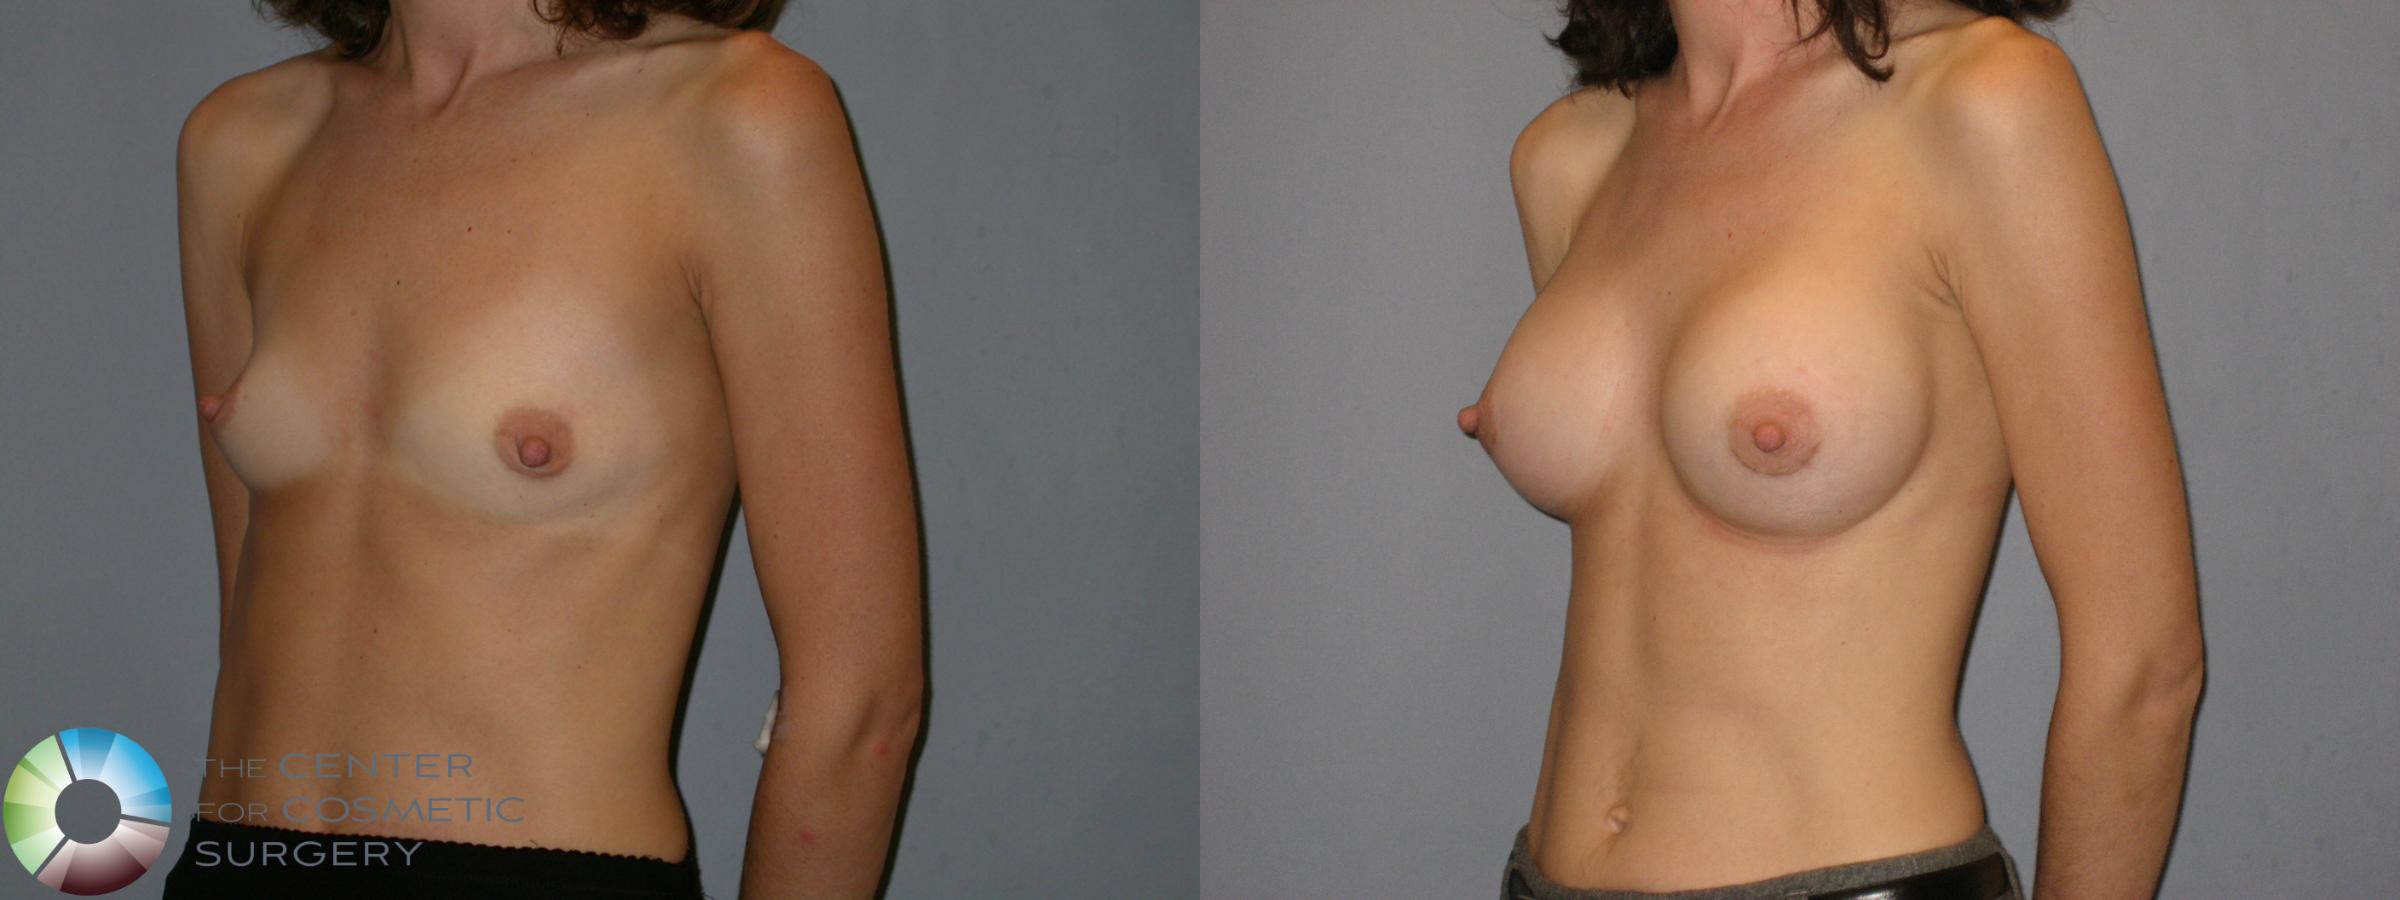 Breast Augmentation Case 113 Before & After View #2 | Golden, CO | The Center for Cosmetic Surgery